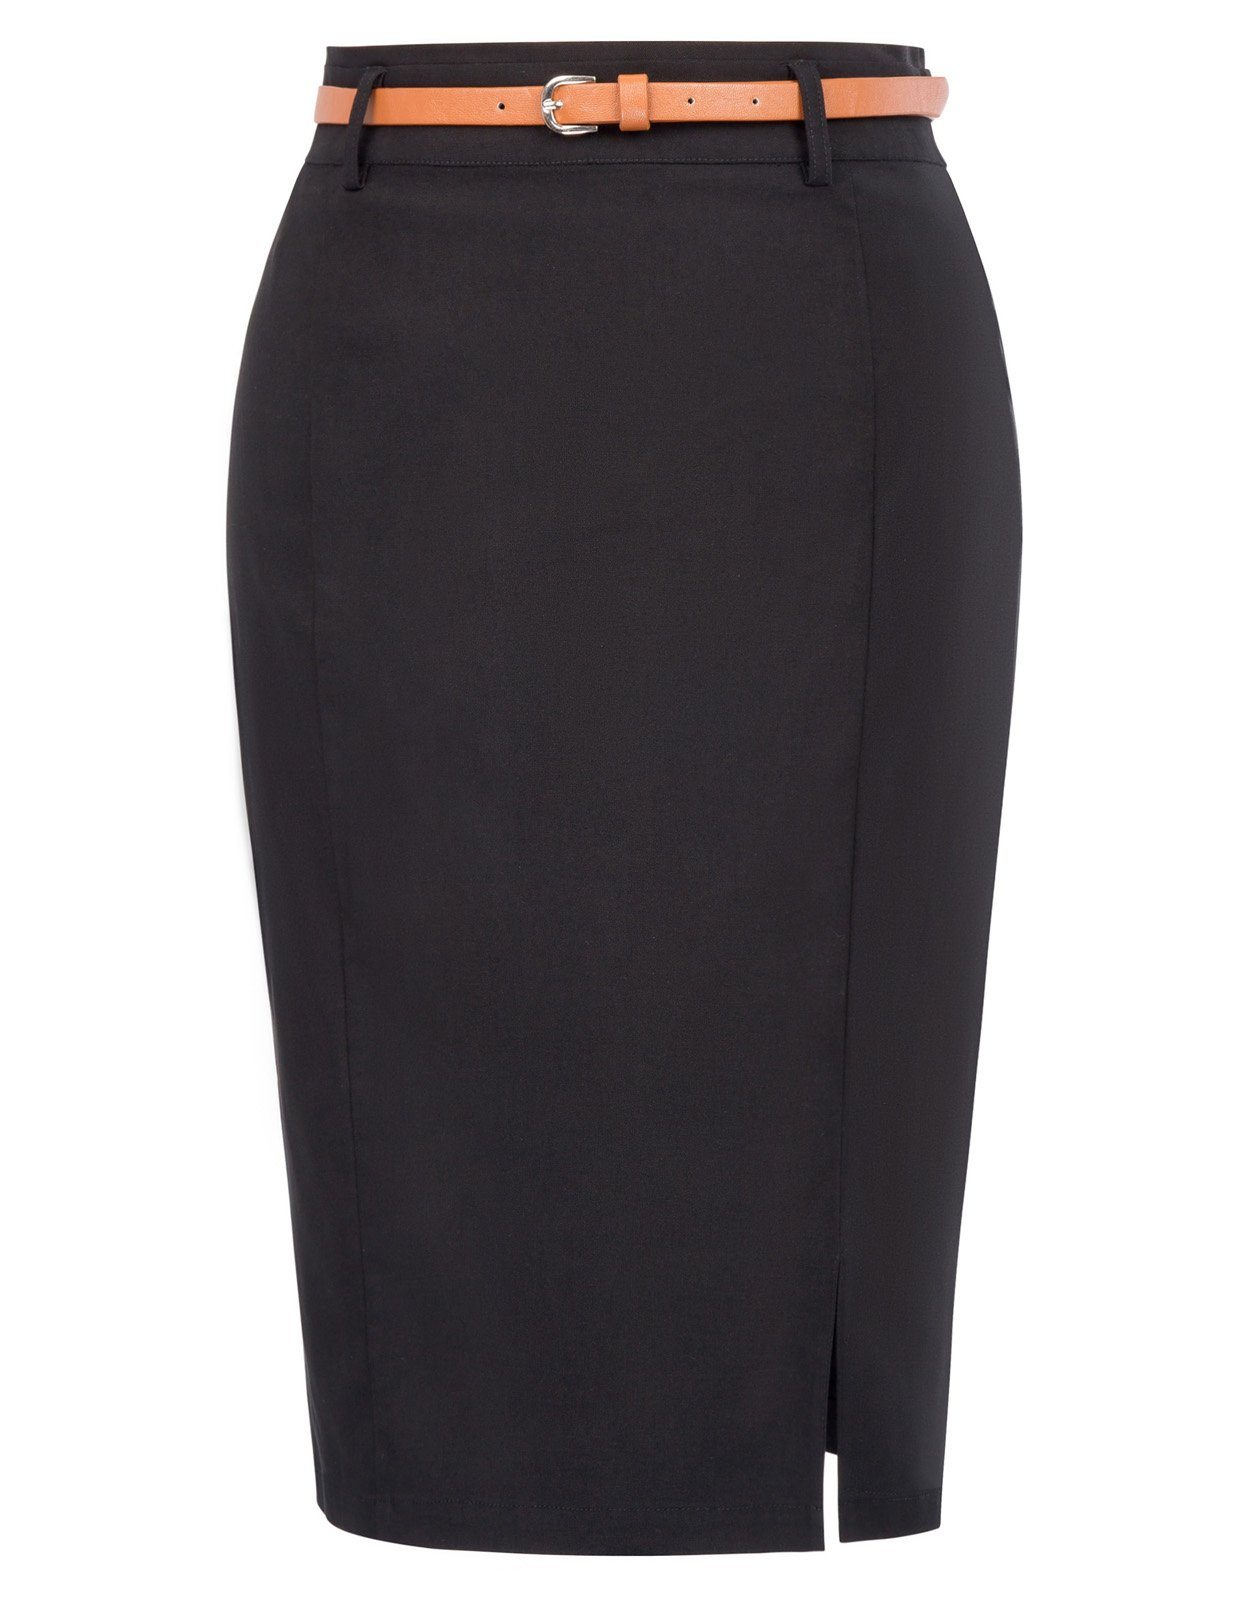 Kate Kasin Women's Stretchy Business Pencil Skirt for Office Wear Size S Black KK856-1